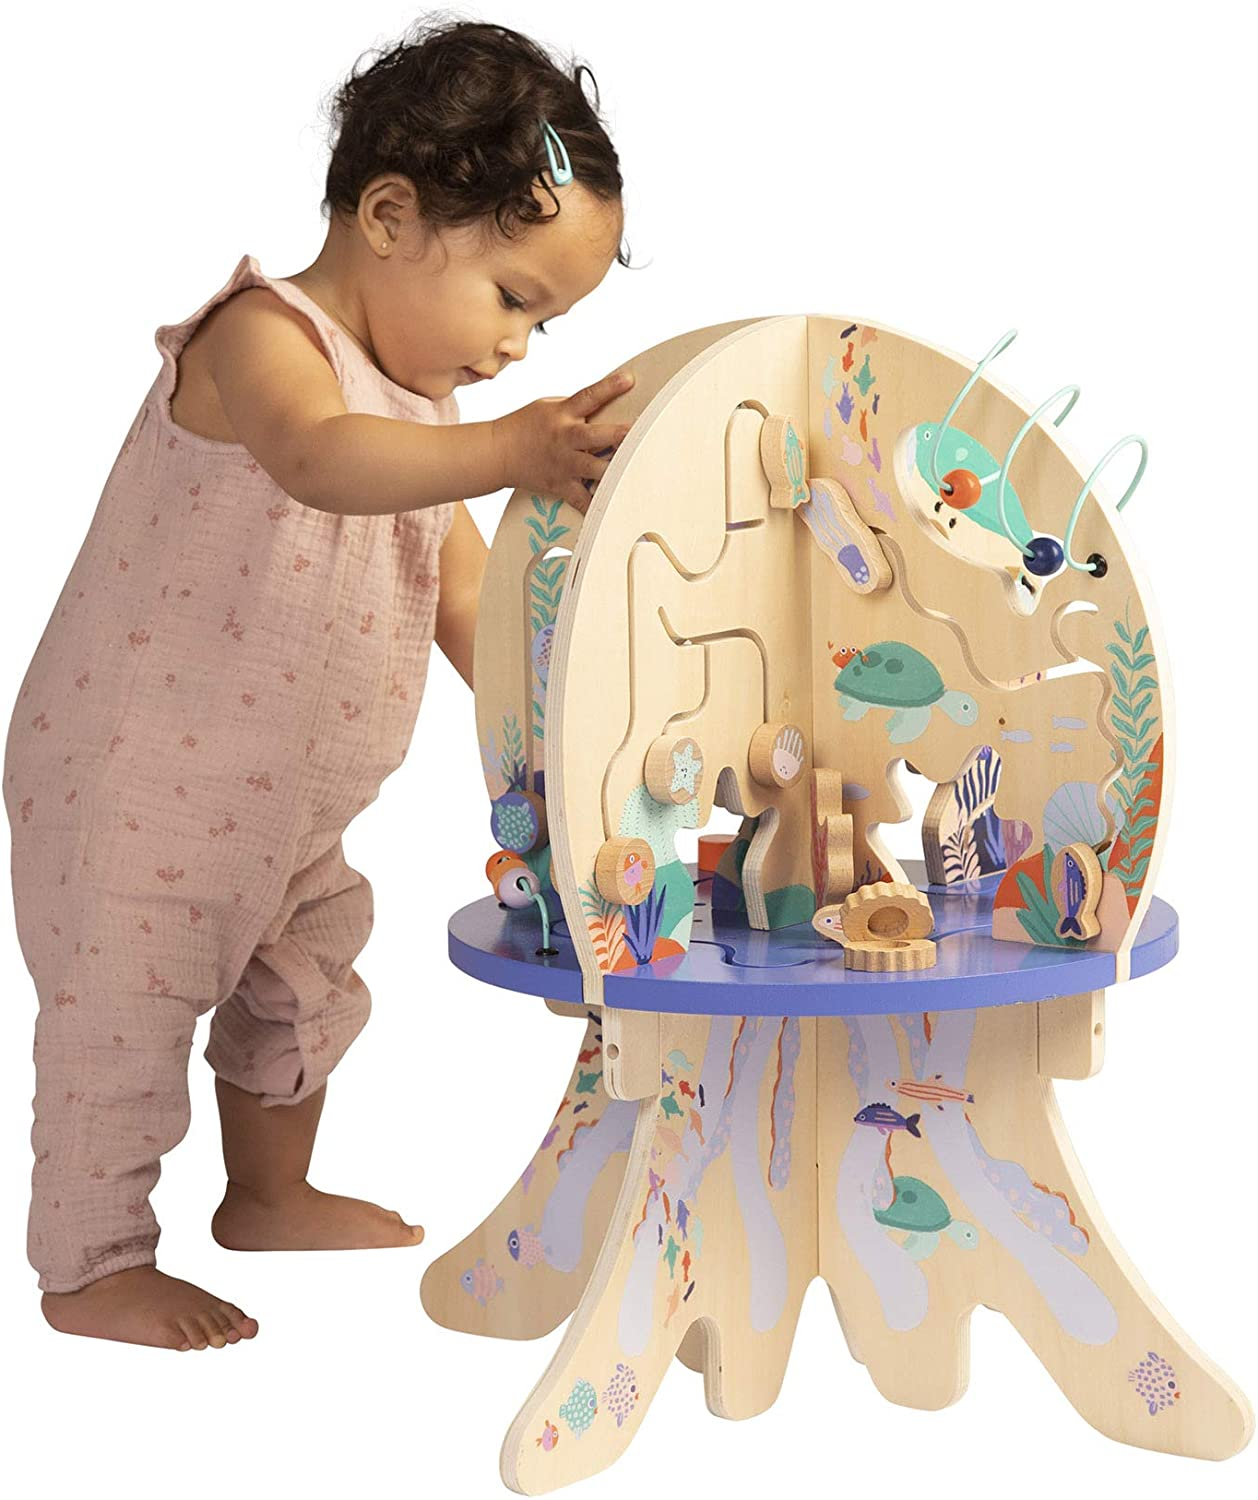 Peekaboo Mirror and Bead Runs Manhattan Toy Deep Sea Adventure Wooden Toddler Activity Centre with Spinning Gears Gliders